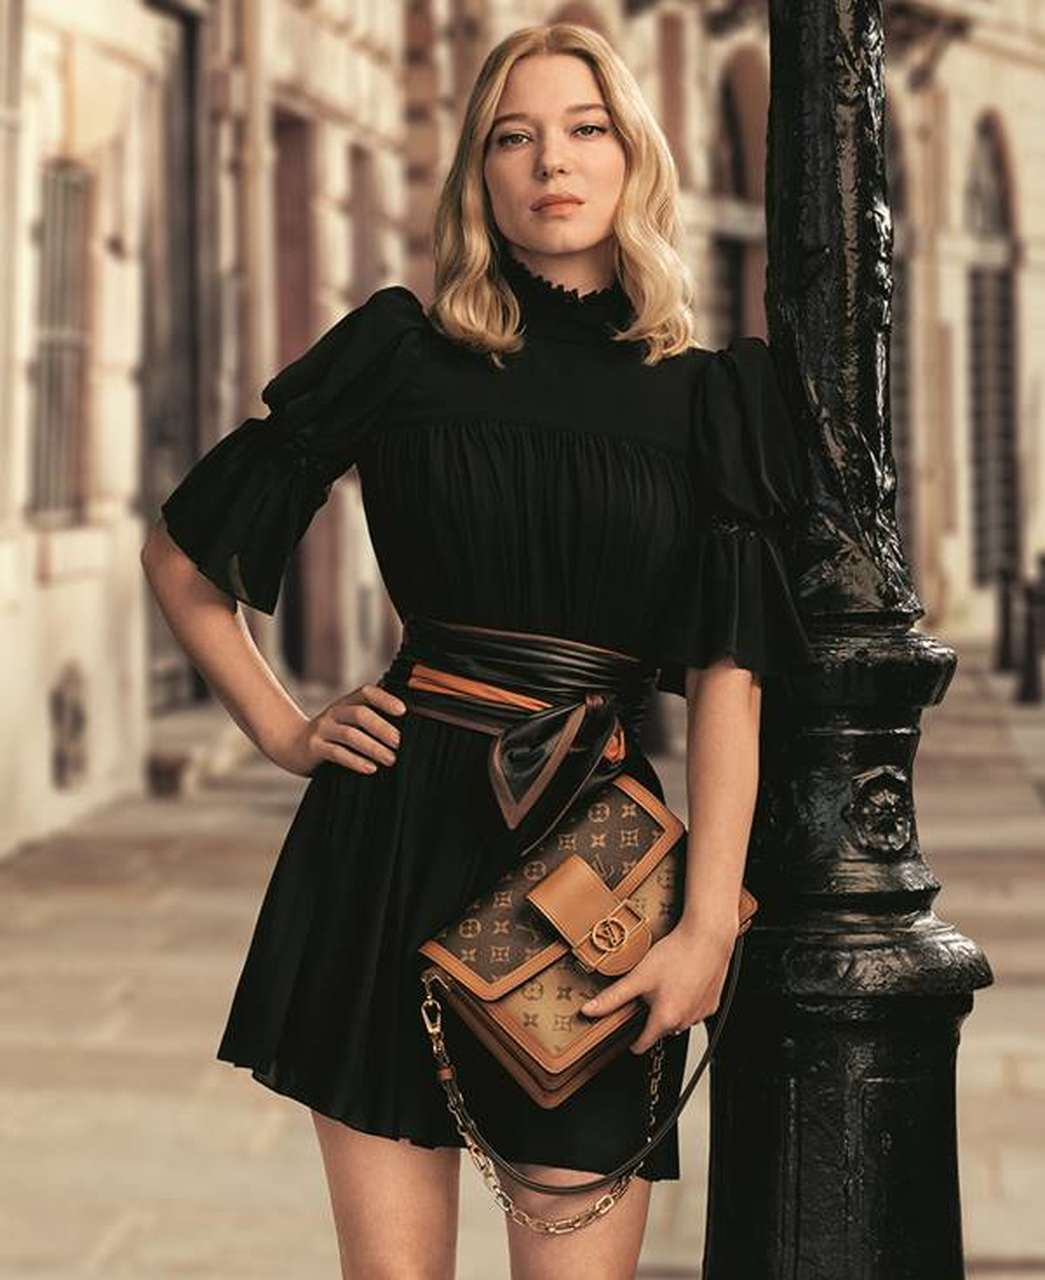 Léa Seydoux-in the campaign the Louis Vuitton